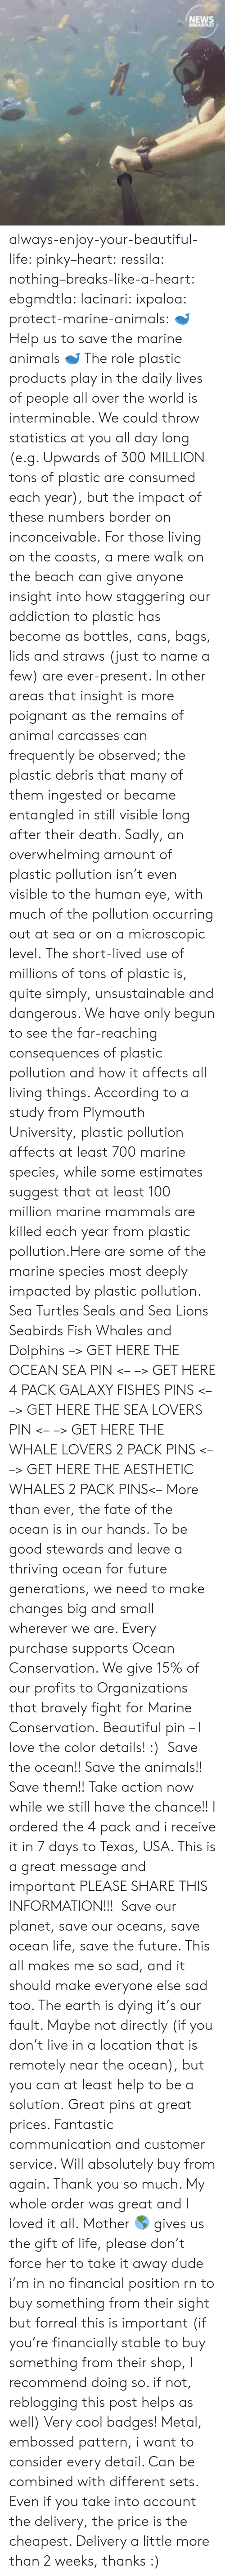 Animals, Beautiful, and Dude: NEWS  BREAKFAST always-enjoy-your-beautiful-life:  pinky–heart: ressila:  nothing–breaks-like-a-heart:  ebgmdtla:  lacinari:  ixpaloa:  protect-marine-animals:  ? Help us to save the marine animals ? The role plastic products play in the daily lives of people all over the world is interminable. We could throw statistics at you all day long (e.g. Upwards of 300 MILLION tons of plastic are consumed each year), but the impact of these numbers border on inconceivable. For those living on the coasts, a mere walk on the beach can give anyone insight into how staggering our addiction to plastic has become as bottles, cans, bags, lids and straws (just to name a few) are ever-present. In other areas that insight is more poignant as the remains of animal carcasses can frequently be observed; the plastic debris that many of them ingested or became entangled in still visible long after their death. Sadly, an overwhelming amount of plastic pollution isn't even visible to the human eye, with much of the pollution occurring out at sea or on a microscopic level. The short-lived use of millions of tons of plastic is, quite simply, unsustainable and dangerous. We have only begun to see the far-reaching consequences of plastic pollution and how it affects all living things. According to a study from Plymouth University, plastic pollution affects at least 700 marine species, while some estimates suggest that at least 100 million marine mammals are killed each year from plastic pollution.Here are some of the marine species most deeply impacted by plastic pollution. Sea Turtles Seals and Sea Lions Seabirds Fish Whales and Dolphins –> GET HERE THE OCEAN SEA PIN <– –> GET HERE 4 PACK GALAXY FISHES PINS <– –> GET HERE THE SEA LOVERS PIN <– –> GET HERE THE WHALE LOVERS 2 PACK PINS <– –> GET HERE THE AESTHETIC WHALES 2 PACK PINS<– More than ever, the fate of the ocean is in our hands. To be good stewards and leave a thriving ocean for future generations, we need 